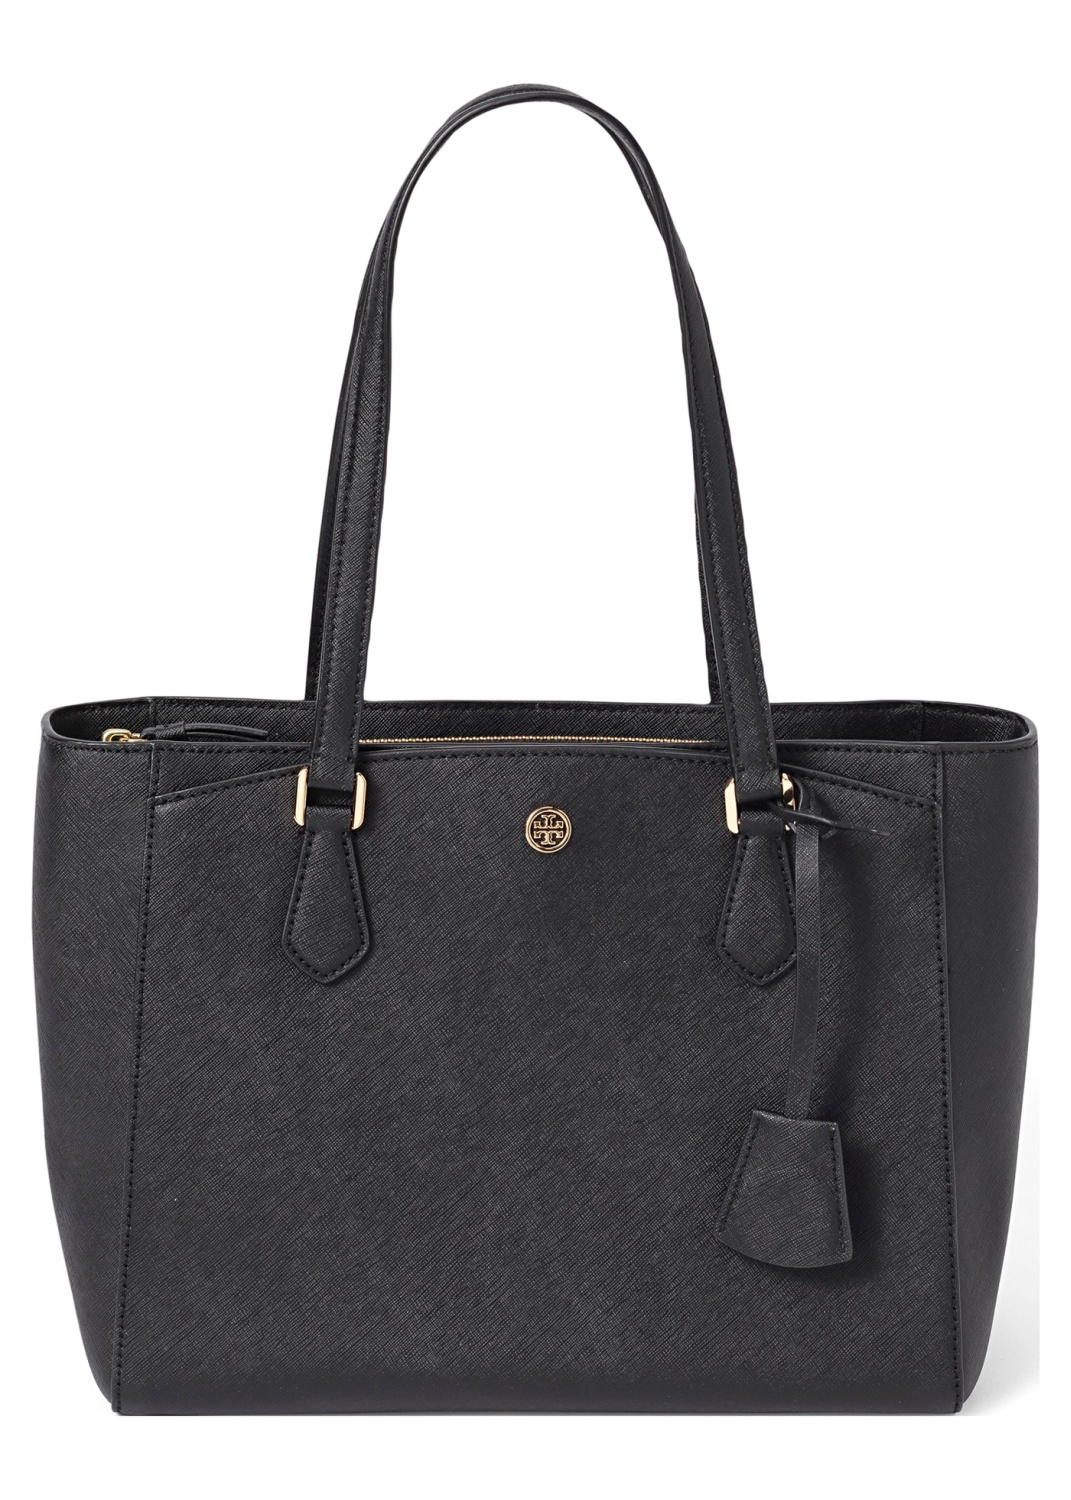 ROBINSON SMALL TOTE image number 0